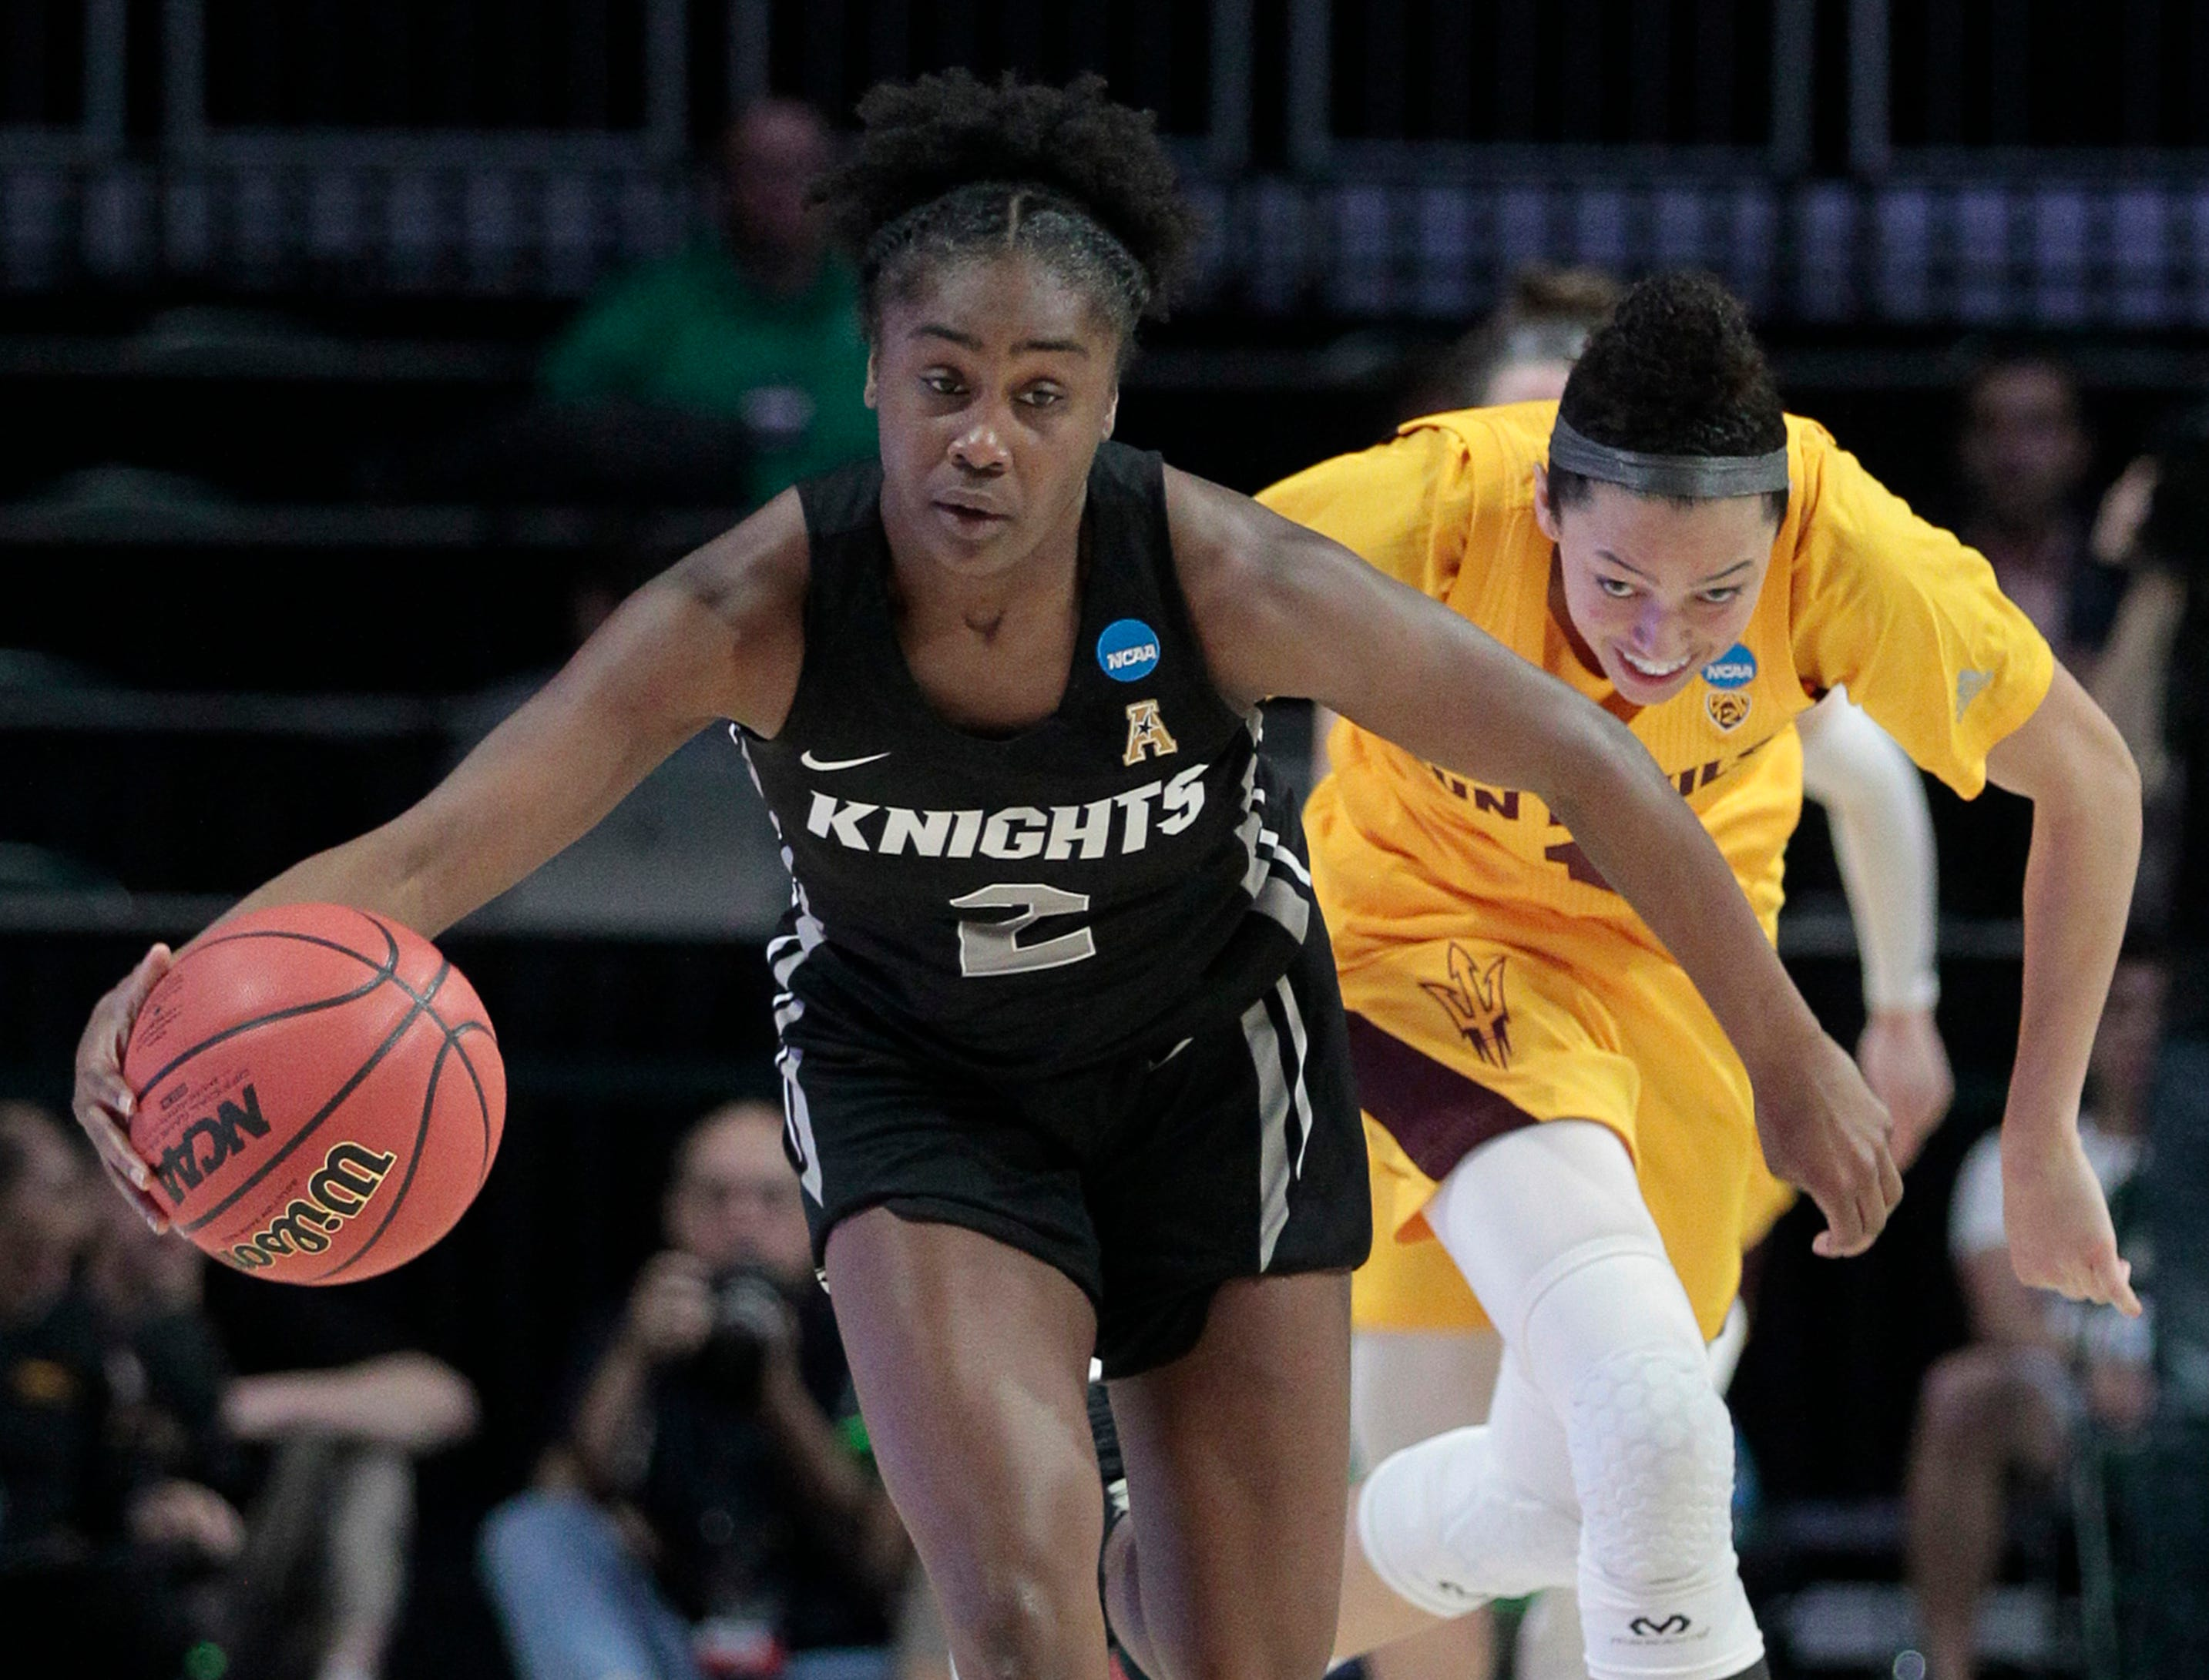 UCF guard Kay Kay Wright (2) gets control of a loose ball as Arizona State guard Reili Richardson (1) pursues, during a first round women's college basketball game in the NCAA Tournament in Friday, March 22, 2019, in Coral Gables, Fla. (AP Photo/Luis M. Alvarez)